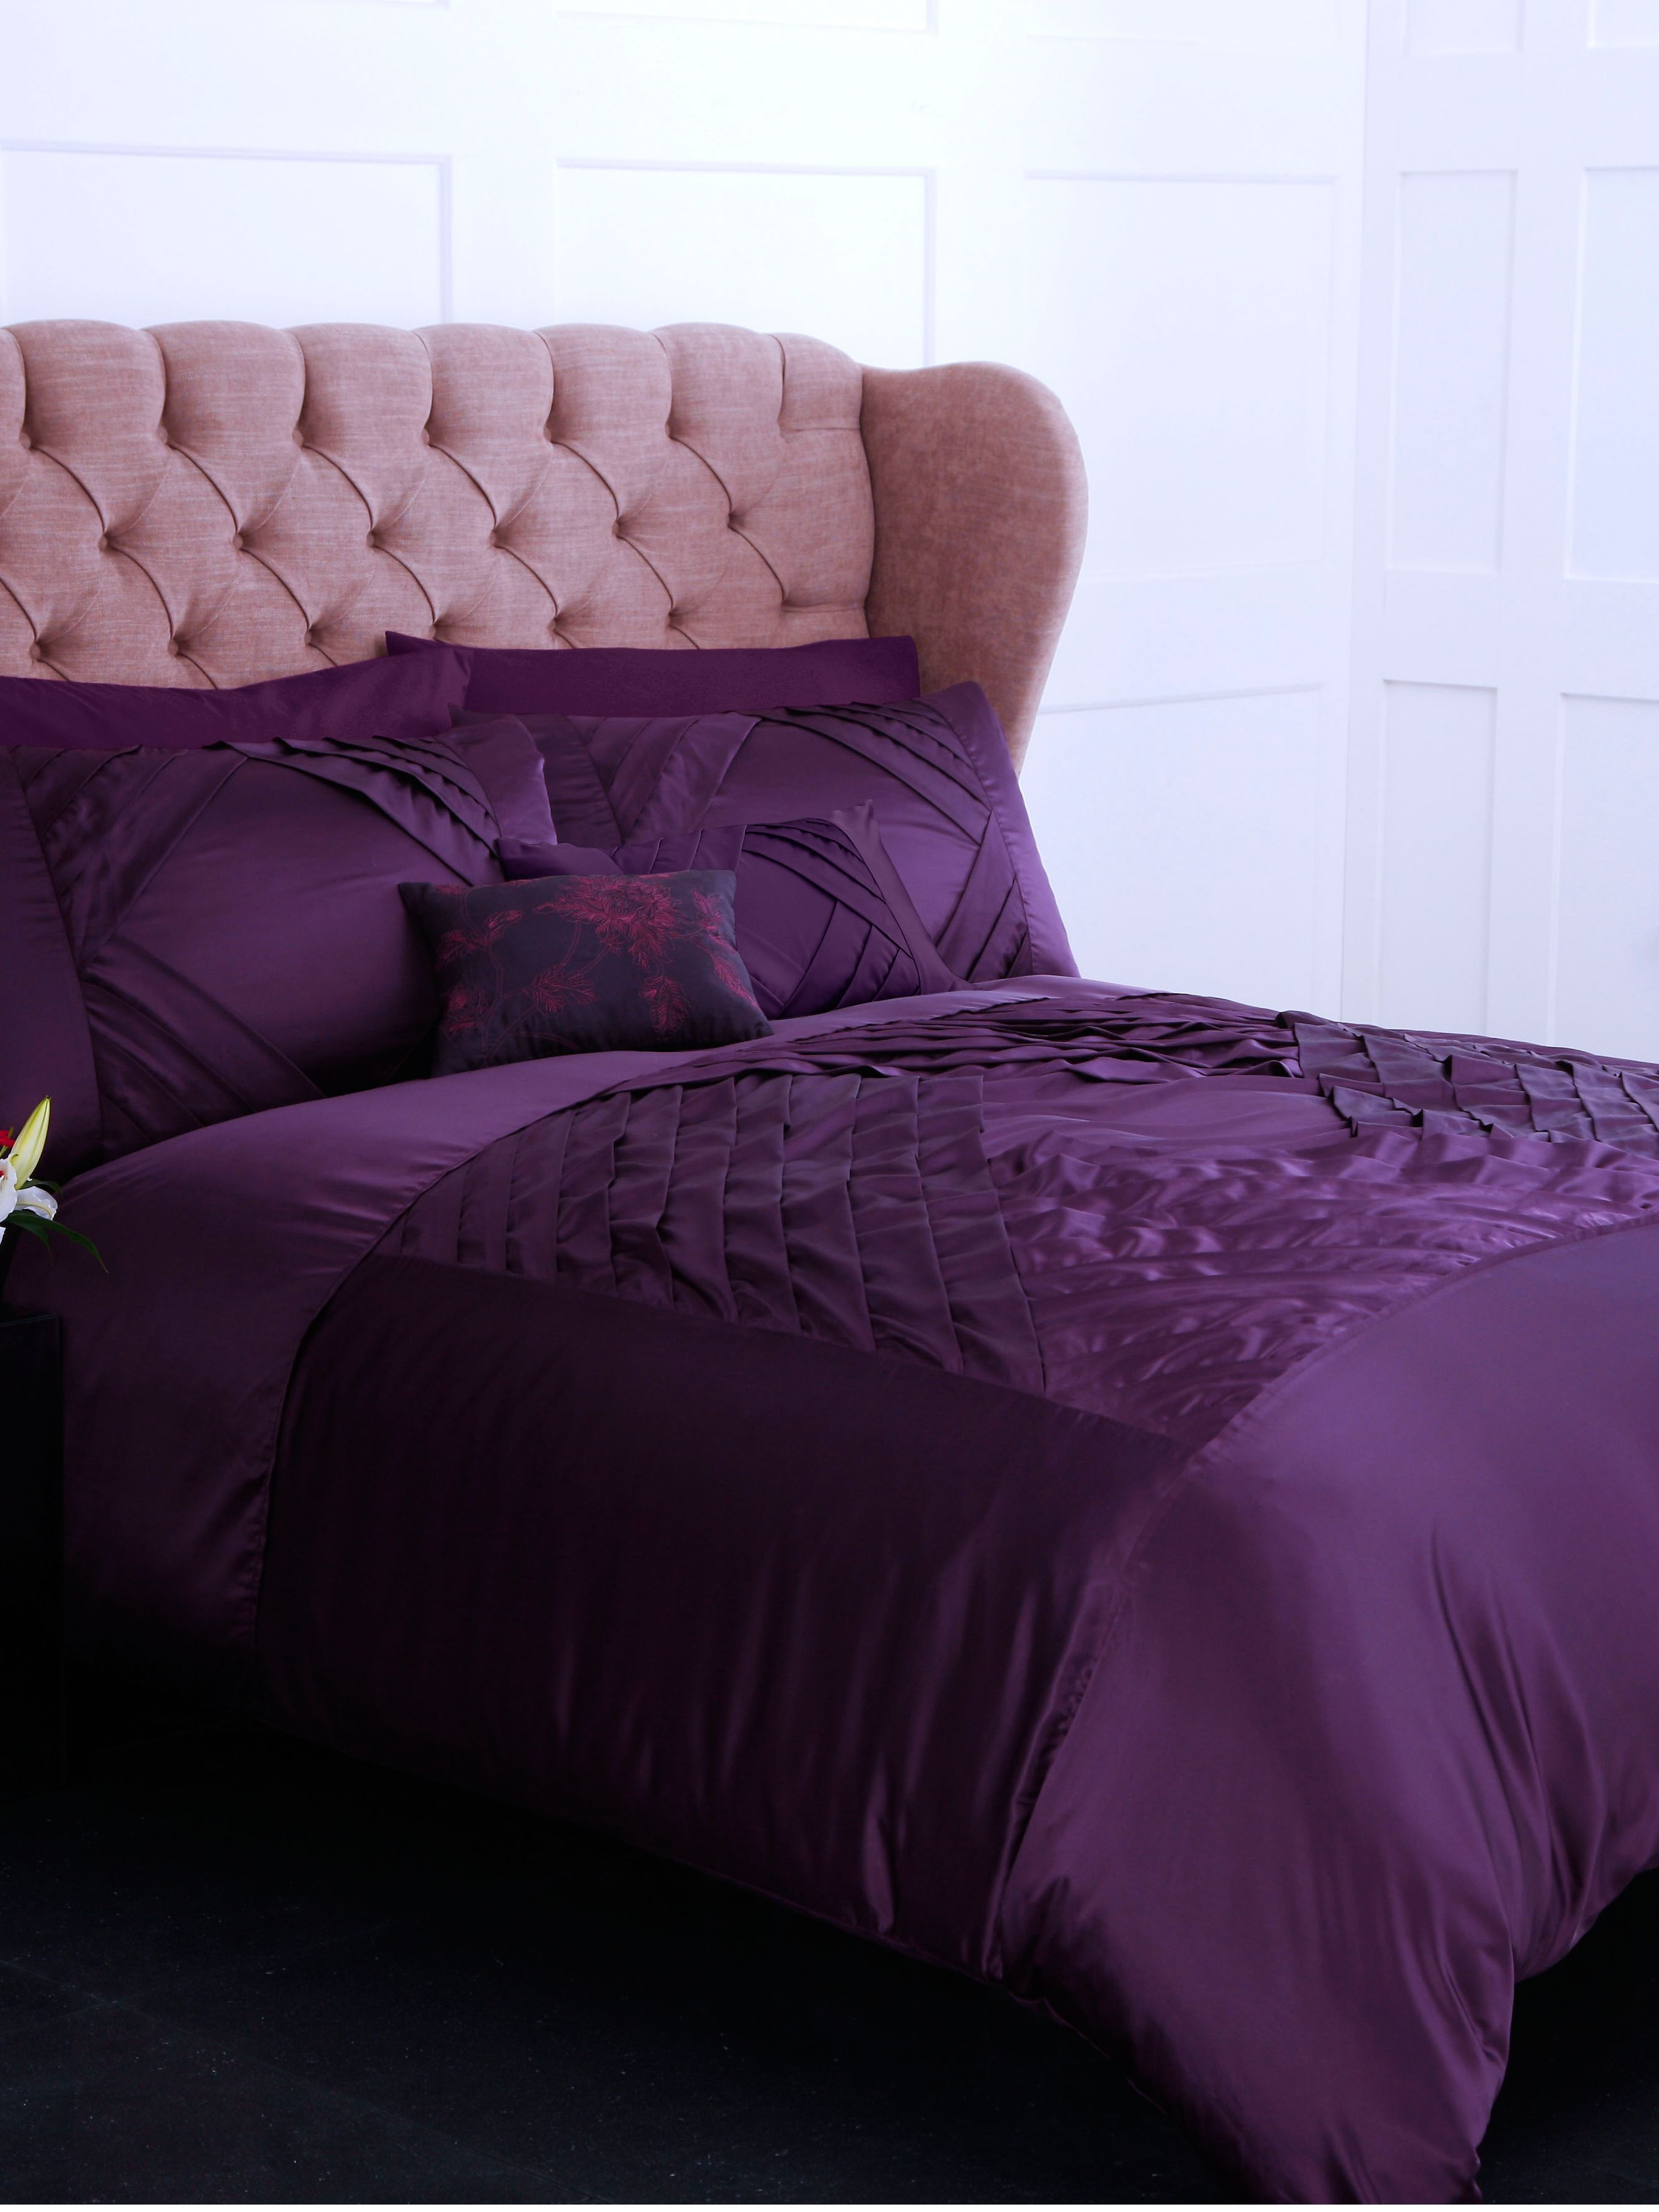 Plum diamond single duvet cover